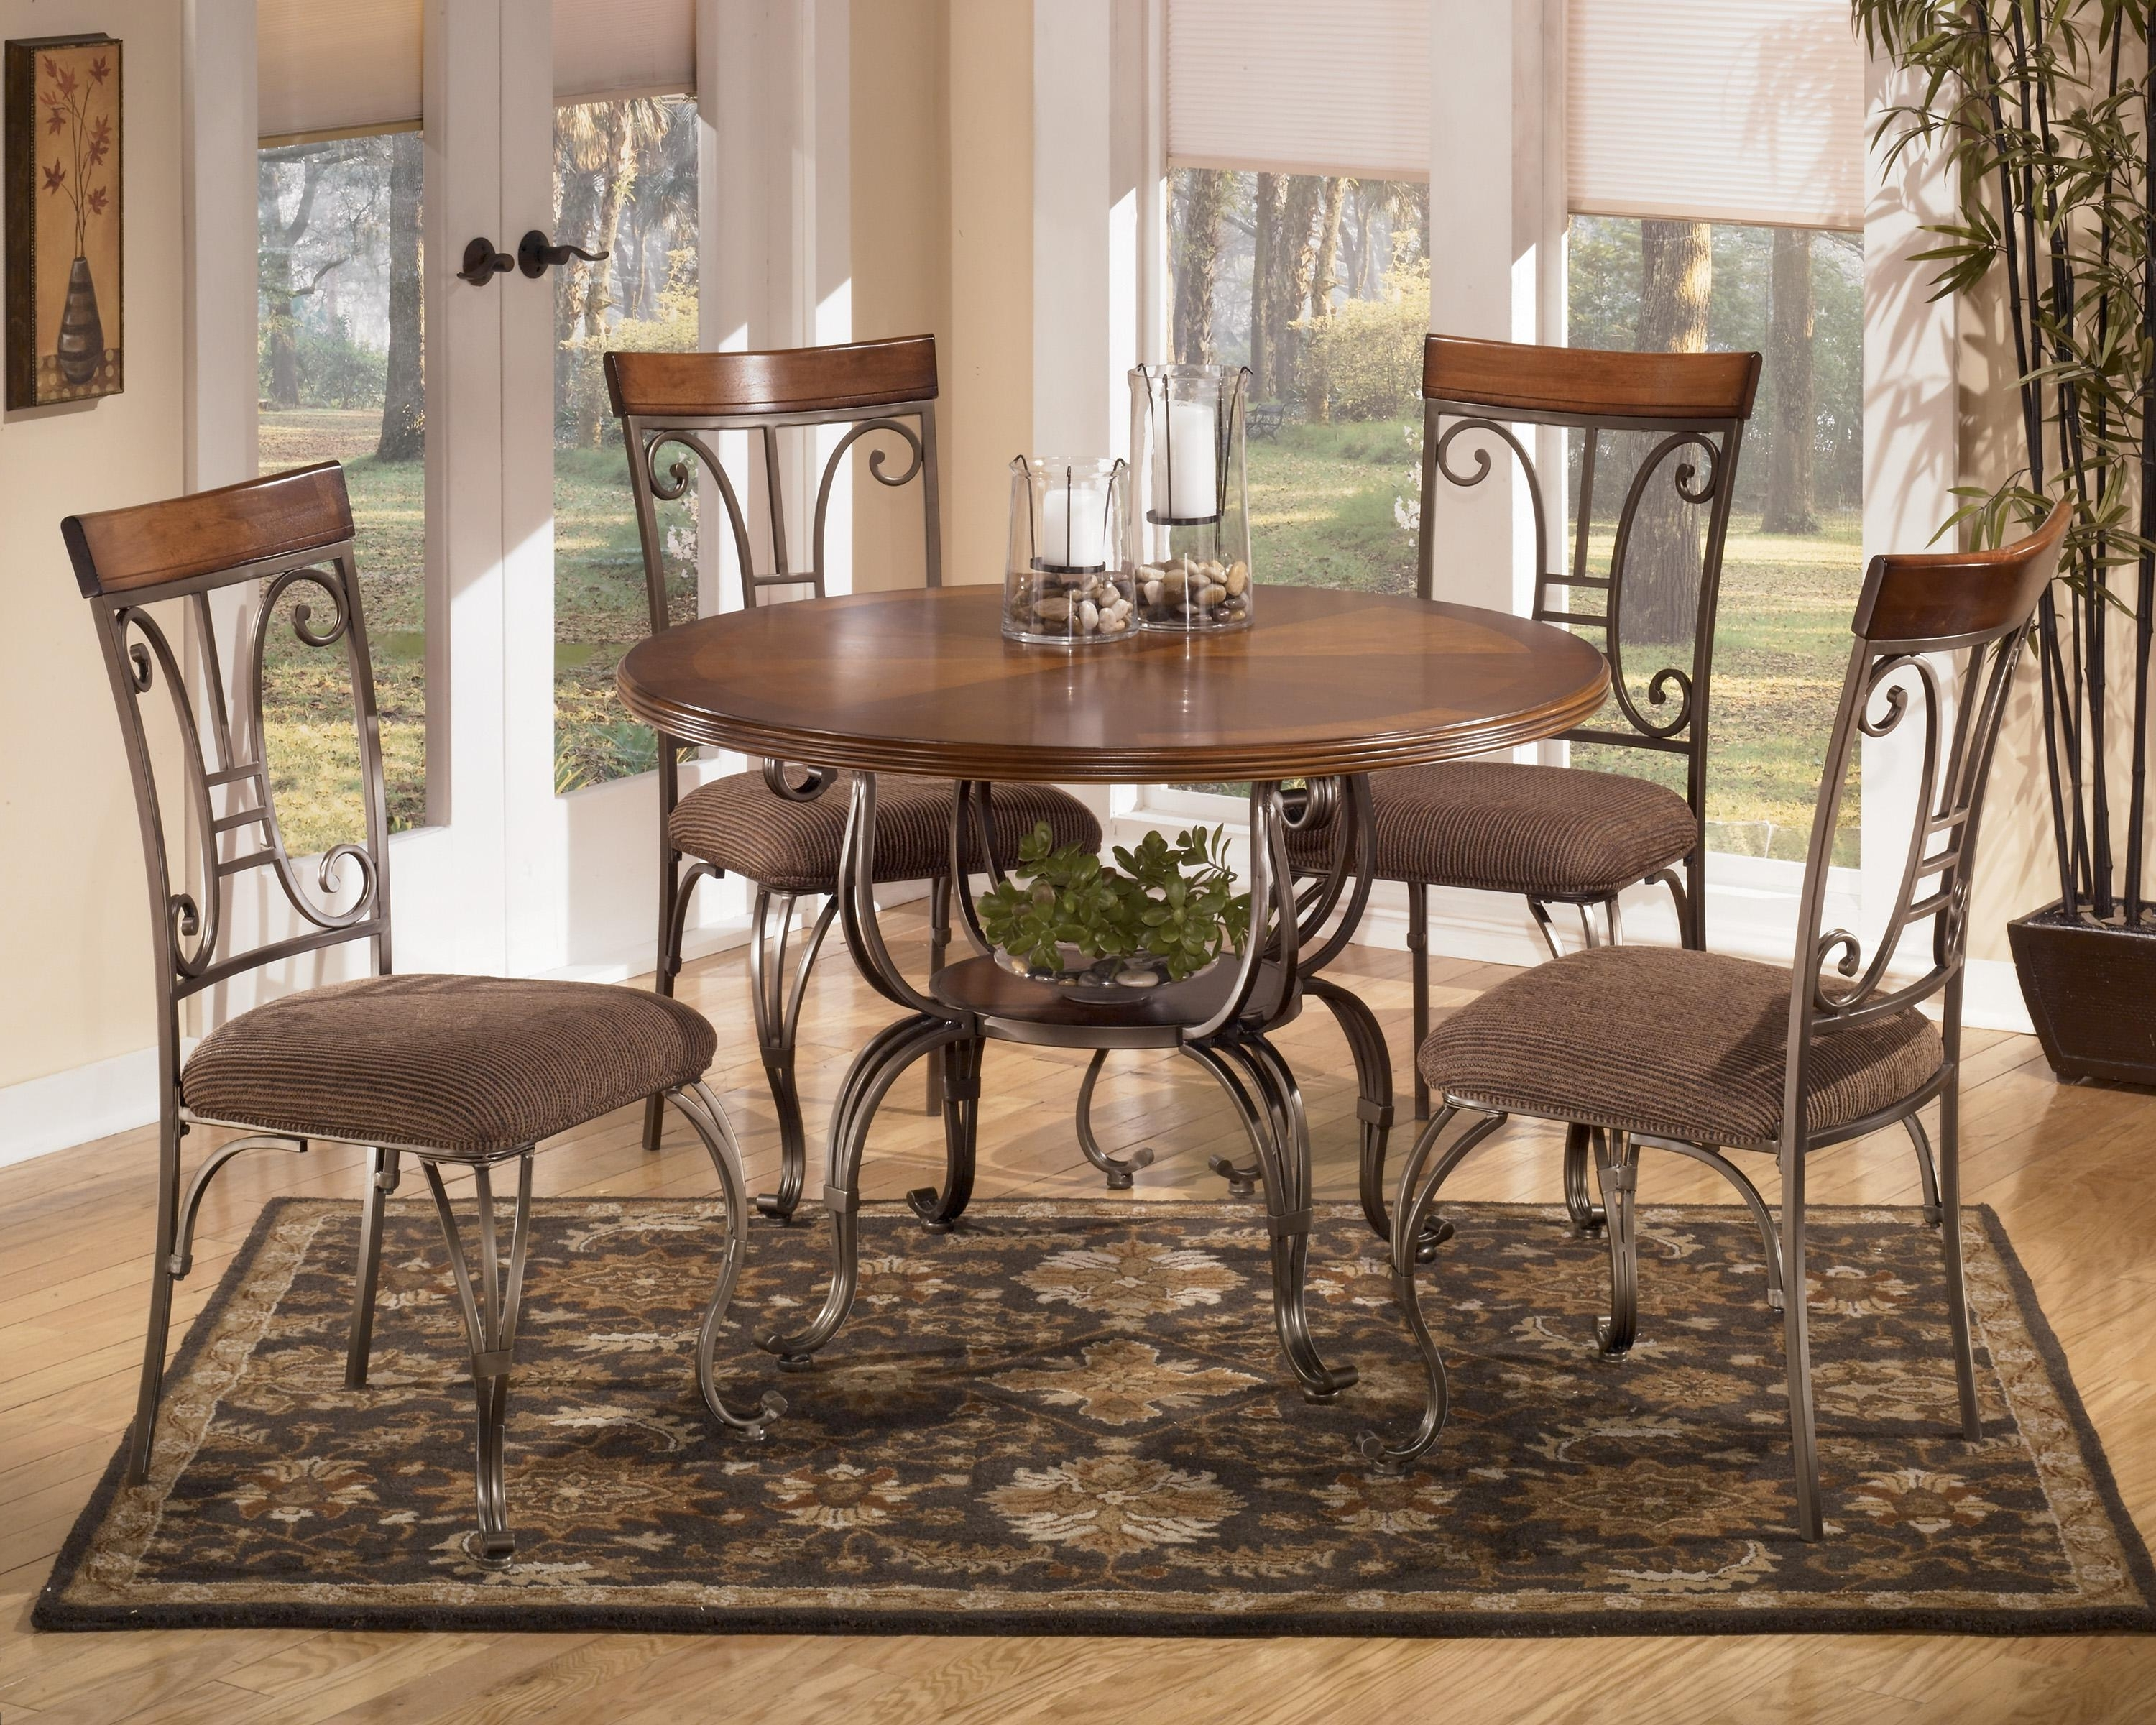 Fashionable Signature Designashley Plentywood 5 Piece Round Dining Table Set Intended For Jaxon 5 Piece Round Dining Sets With Upholstered Chairs (View 25 of 25)